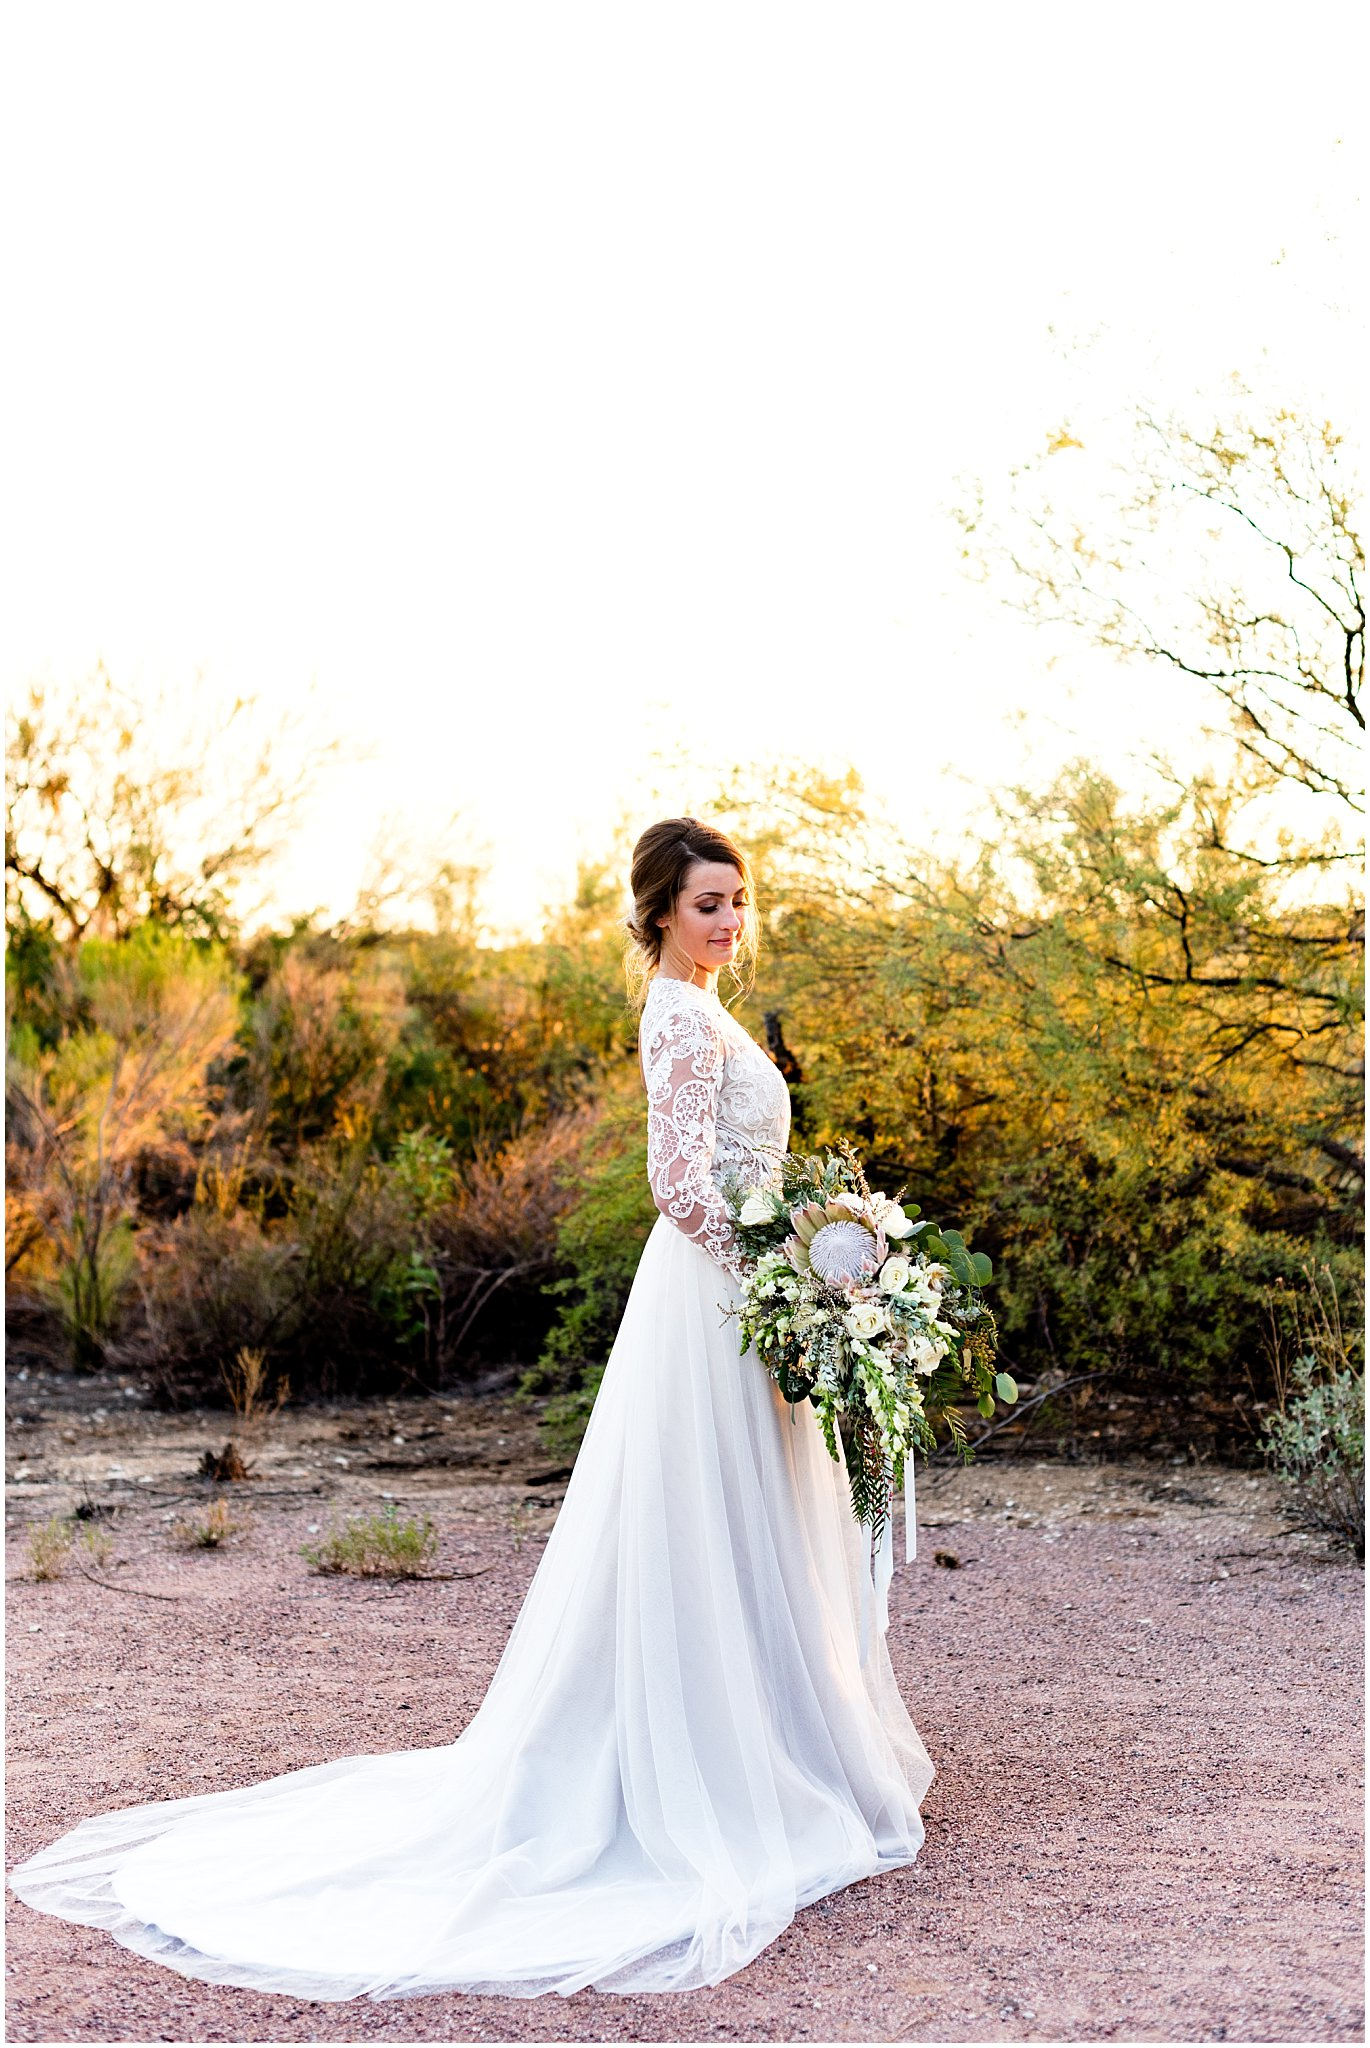 This Ti Adora dress from  J.Bridal Boutique  stole my heart. Long sleeves, lace, an open back, and a small train. What more could you want in a dress?